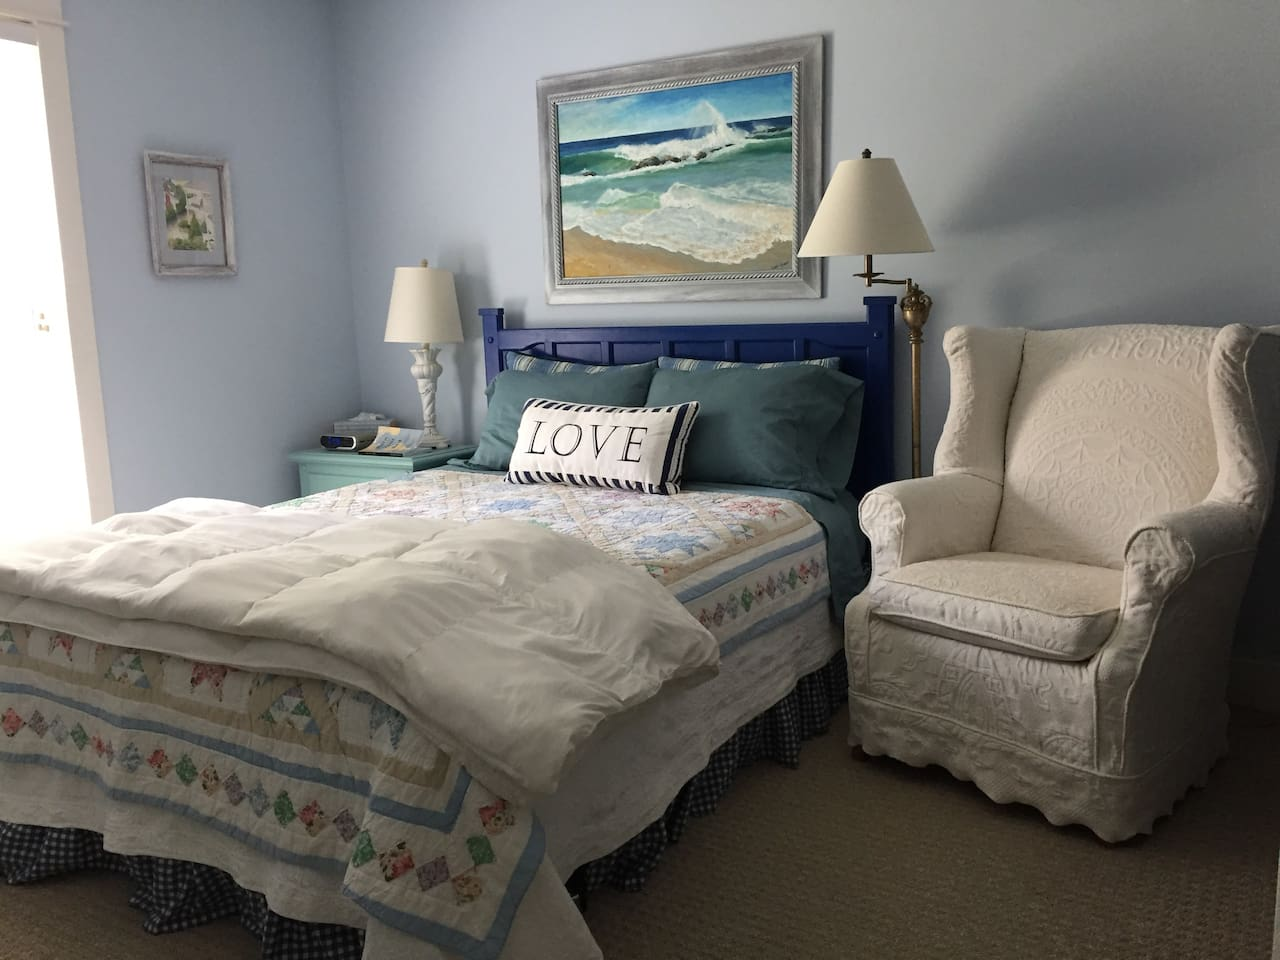 A comfortable queen-sized bed is a must for you, our out-of-town travelers in a quiet end of the home.